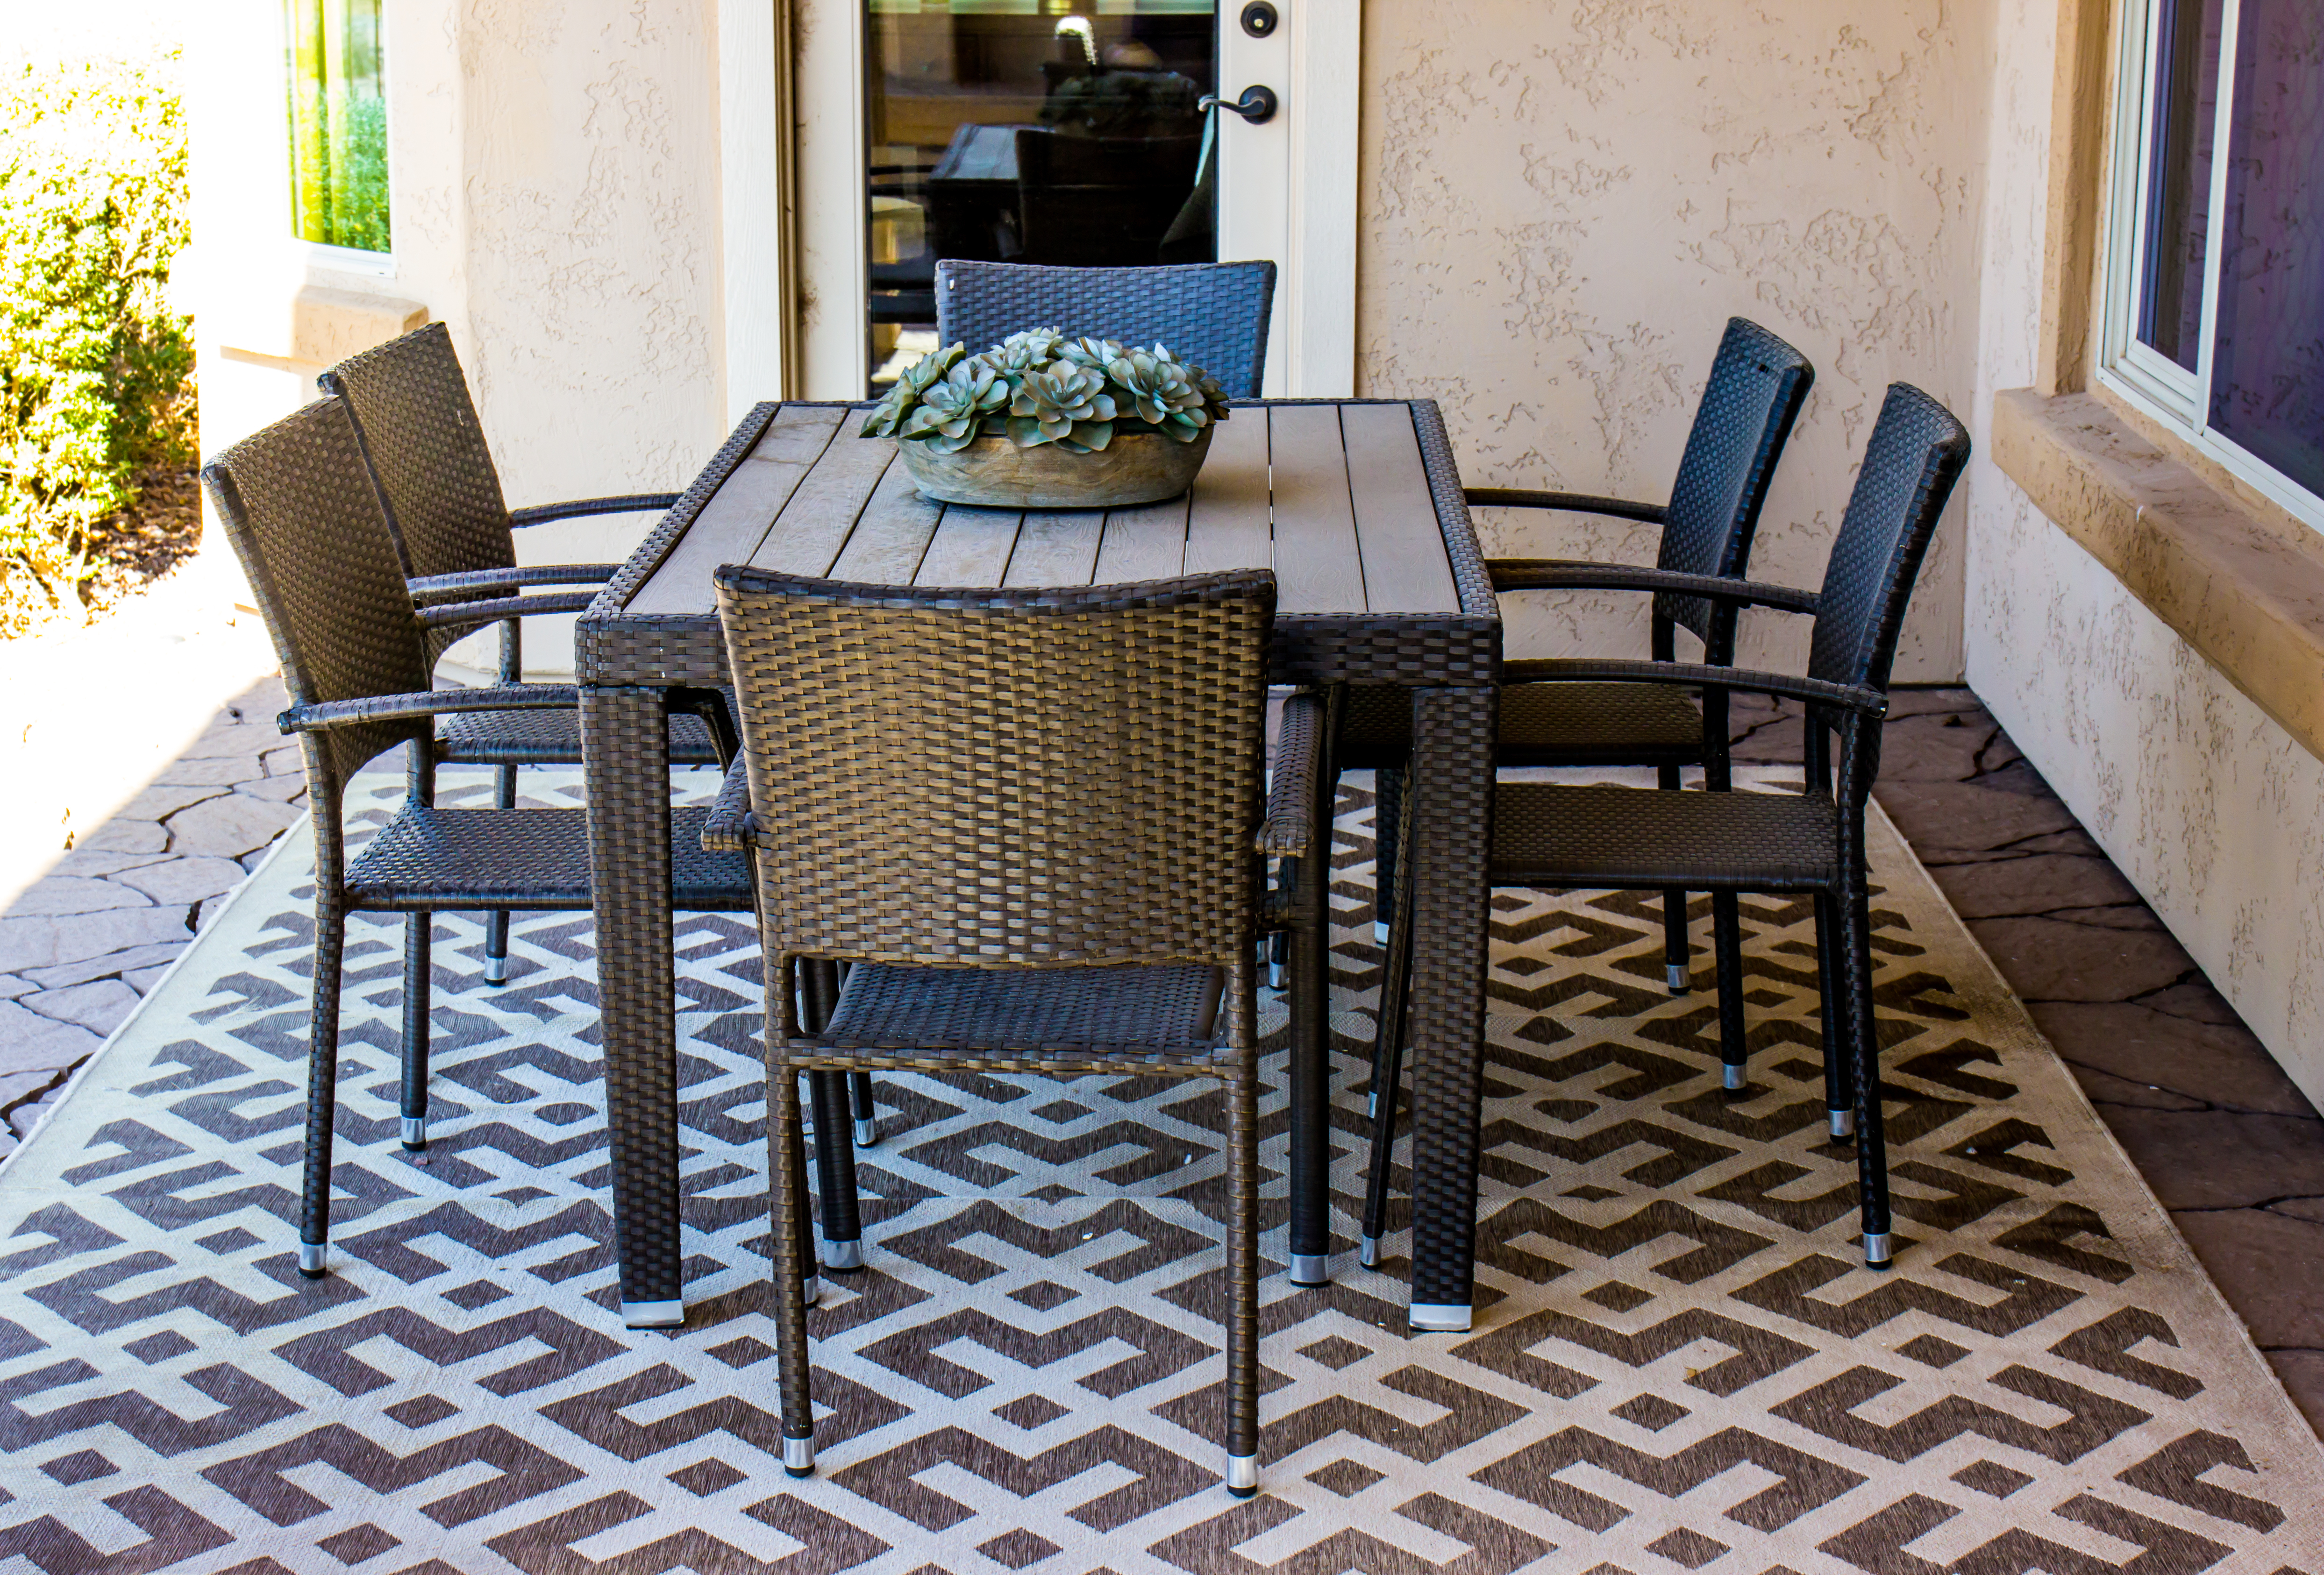 What Size Area Rug Should Go Under A 48 Inch Round Table? | Home Within Most Recent Partin 3 Piece Dining Sets (View 15 of 20)